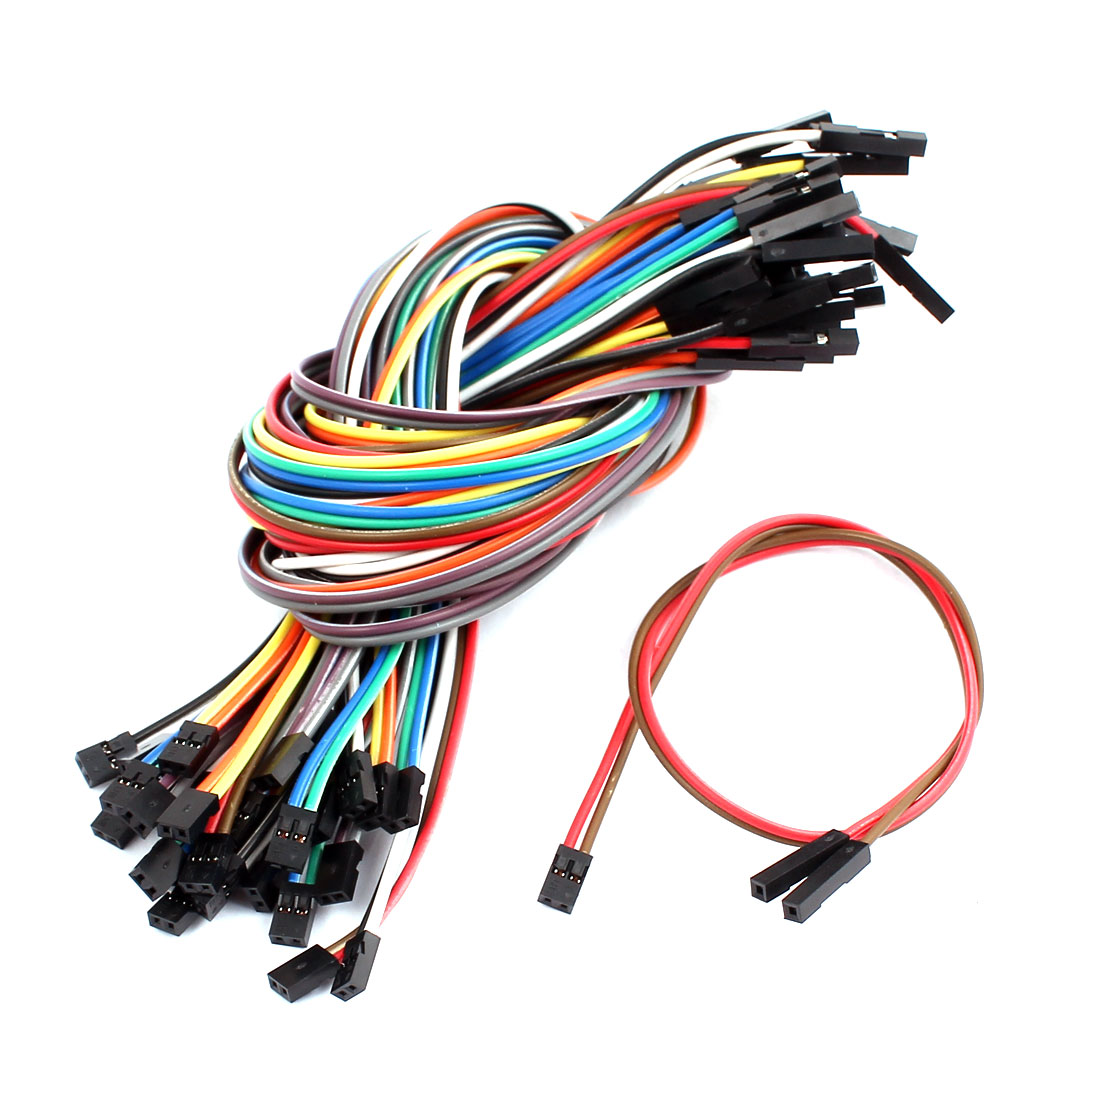 30pcs 30cm 12 inches Multicolored 2P 2.0mm to 1P 2.54mm Female to Female Breadboard Jumper Wires Ribbon Cables Kit